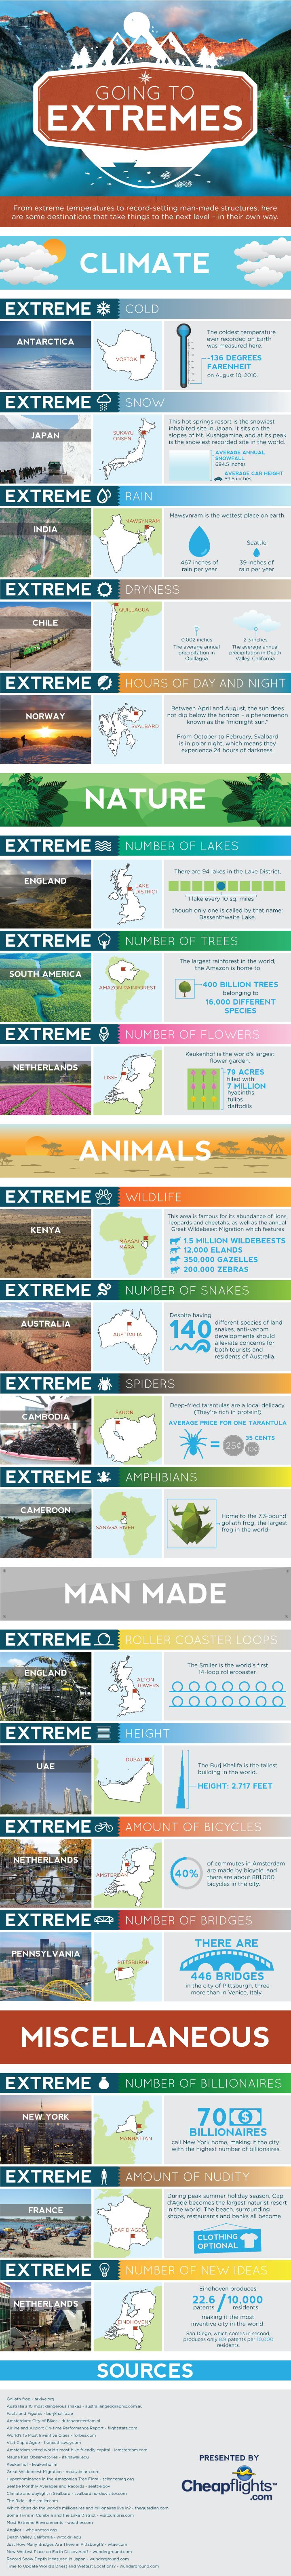 The most extreme destinations in the world Infographic